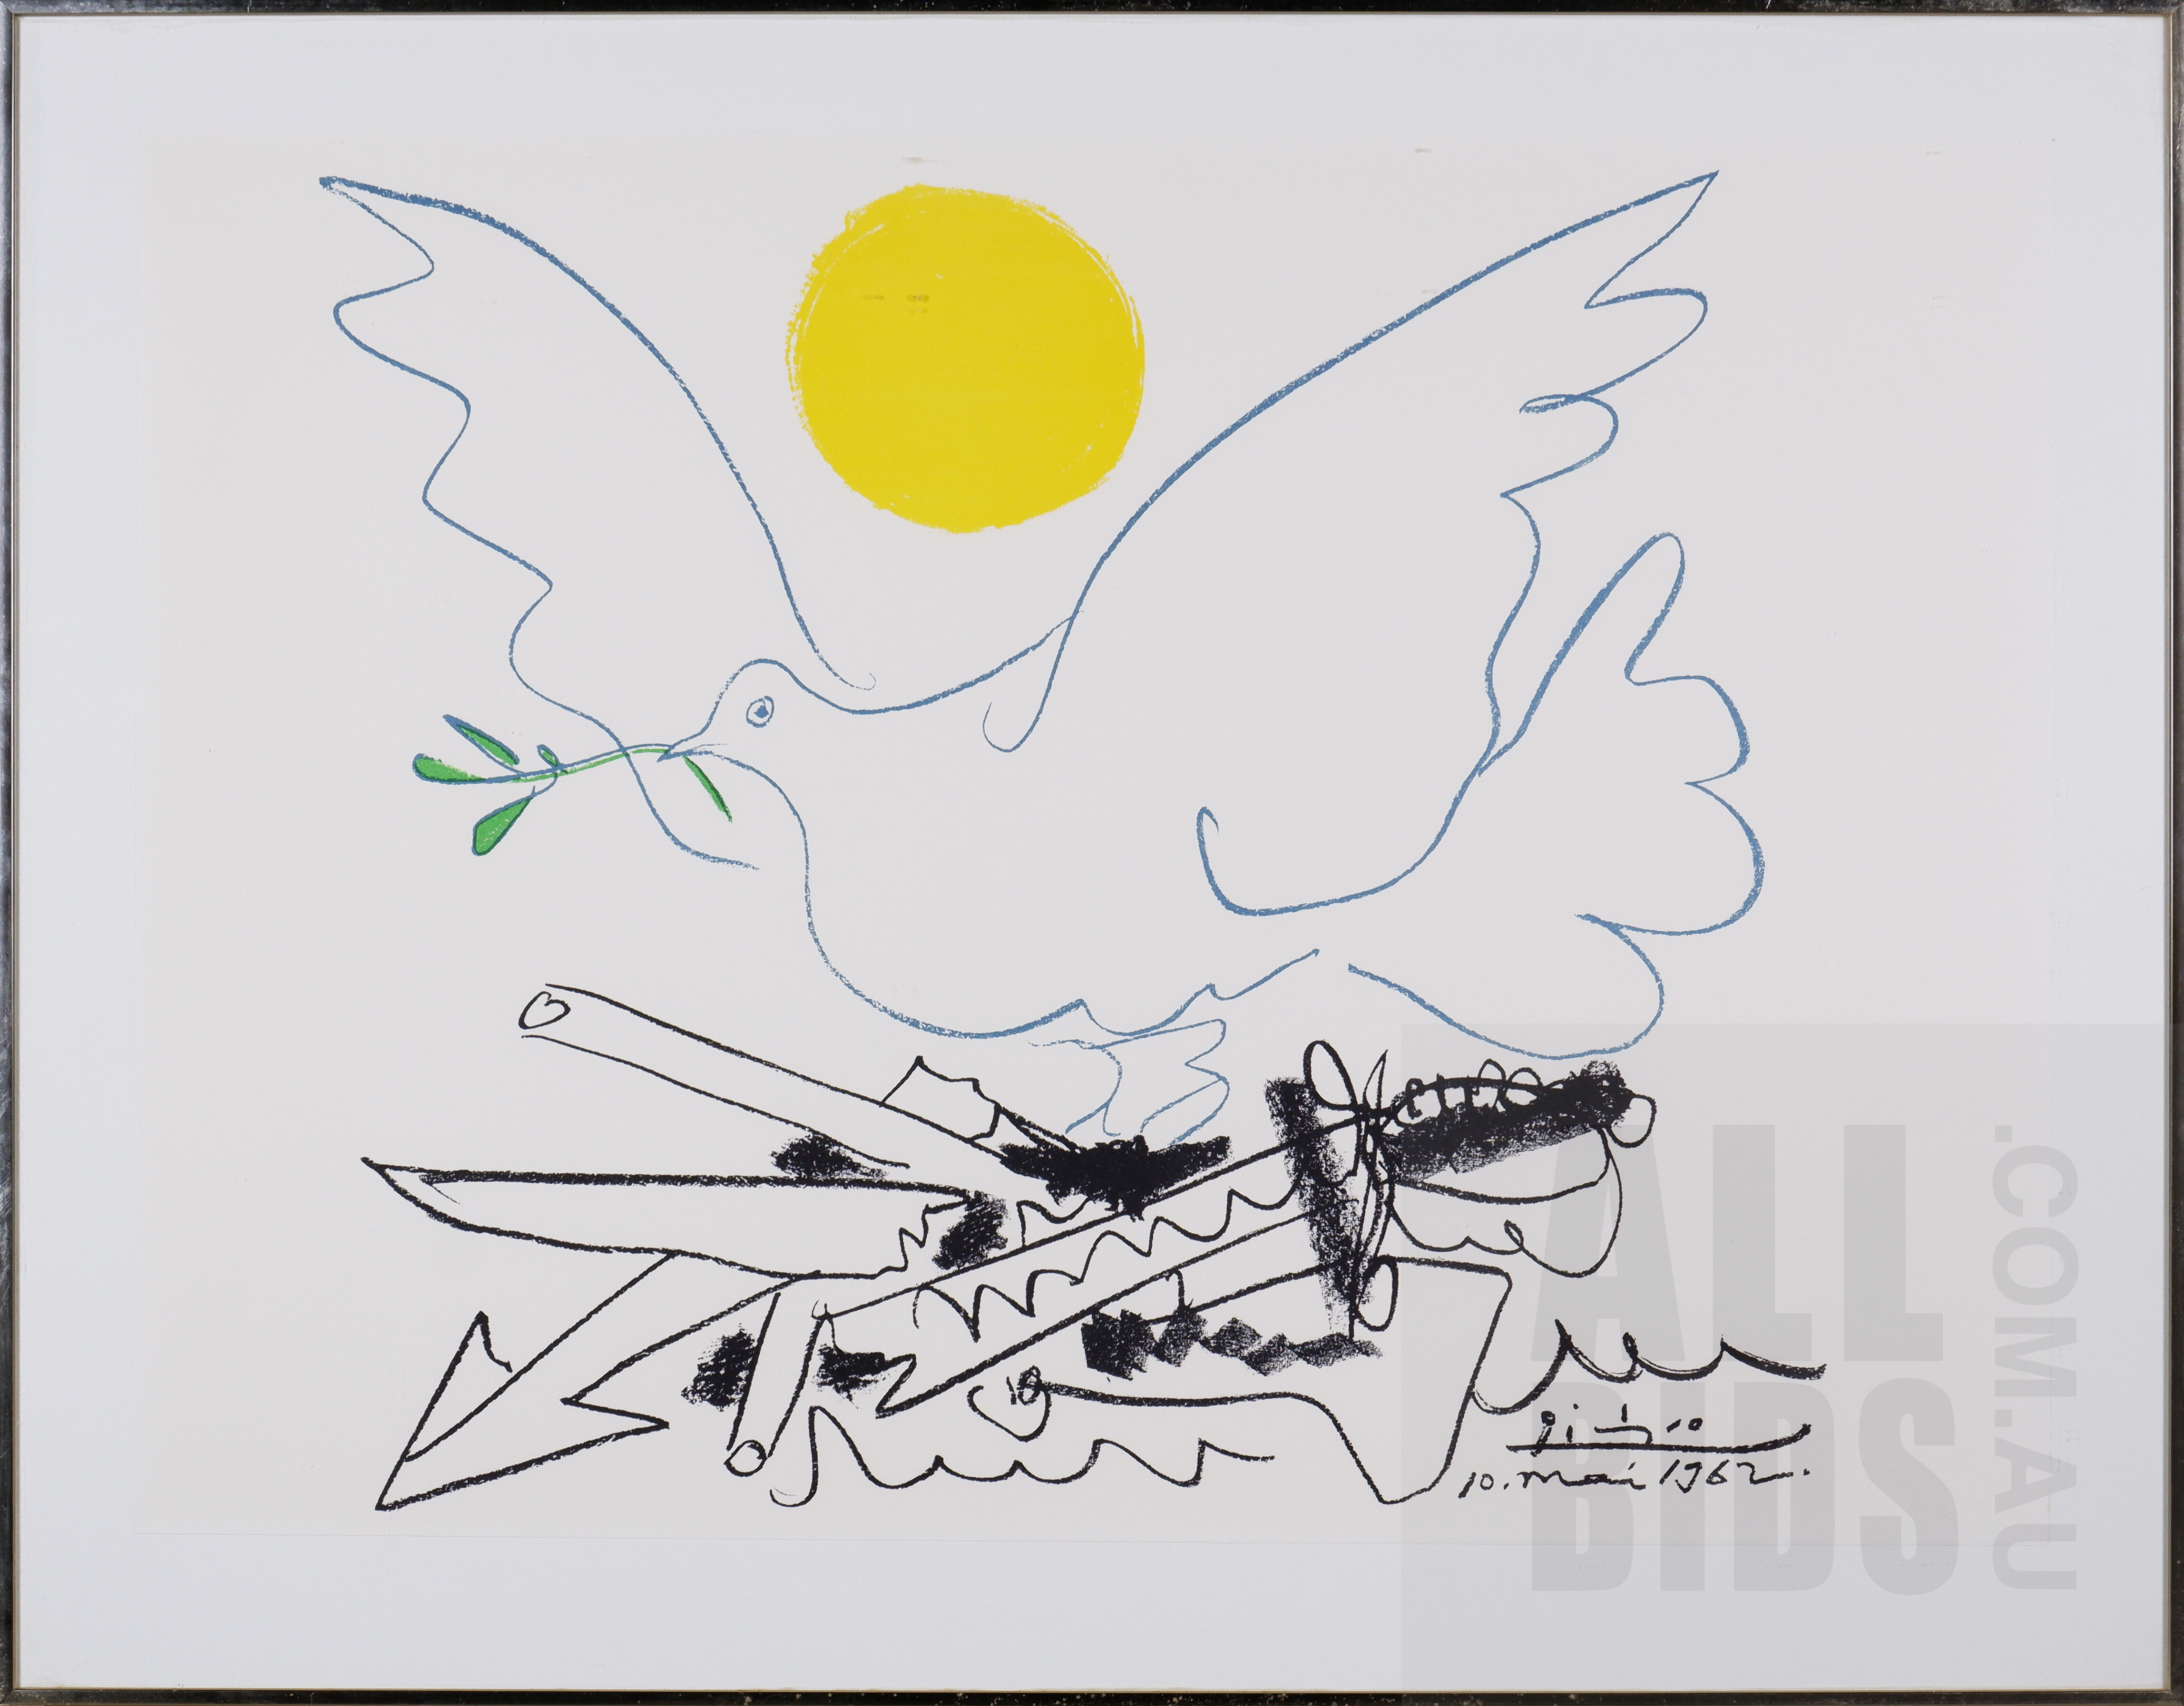 'Pablo Picasso (1881-1973, Spanish), Poster for World Congress for General Disarmament and Peace 1962, Offset Lithograph, 55 x 76 cm (sheet size)'